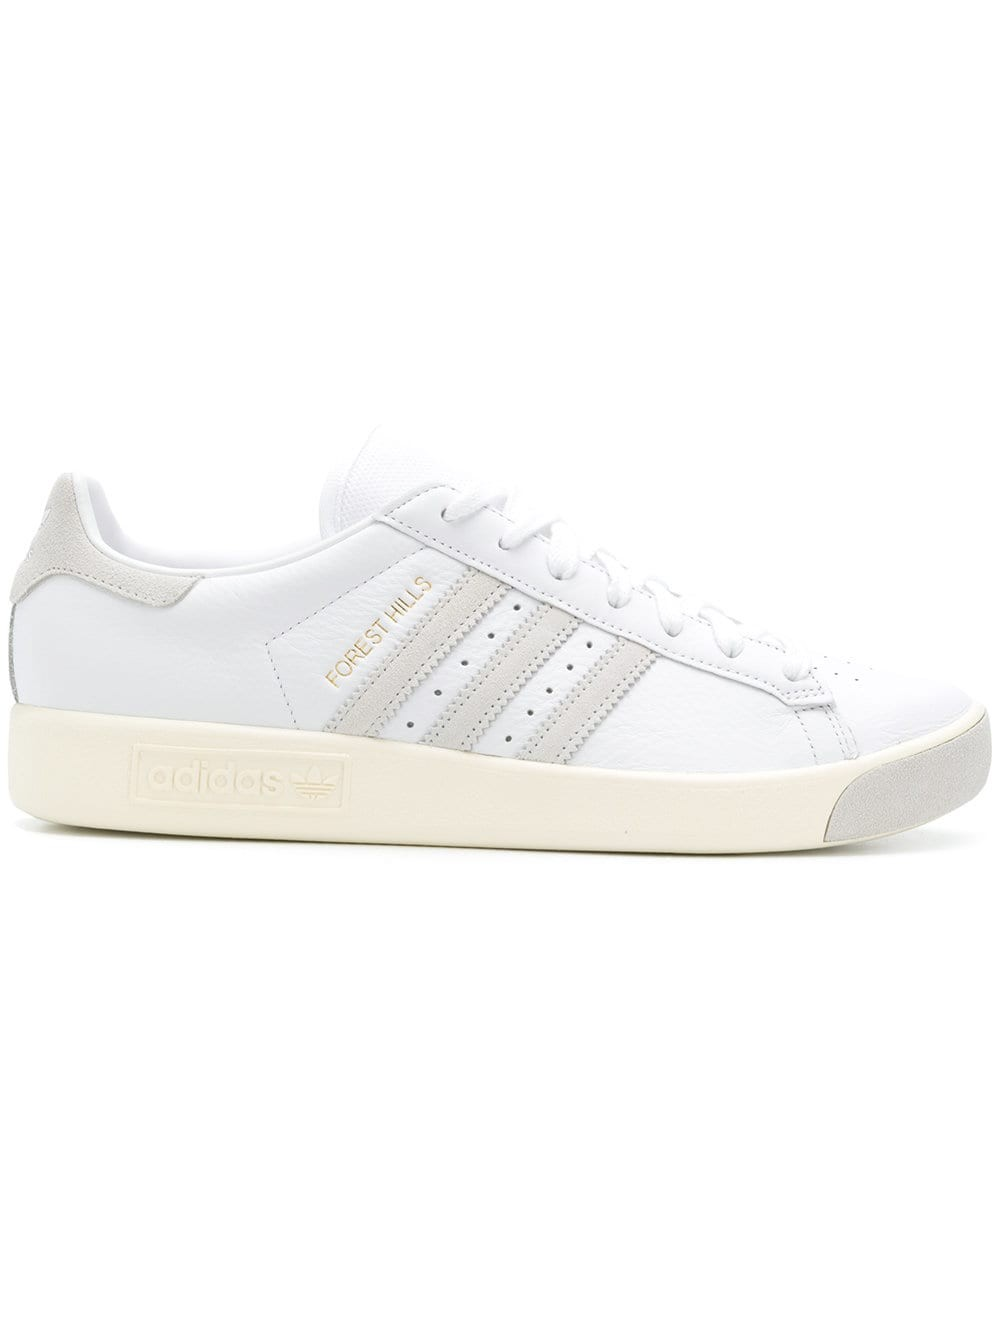 Adidas Originals Forest Hills | Blanche | Sneakers | D96779